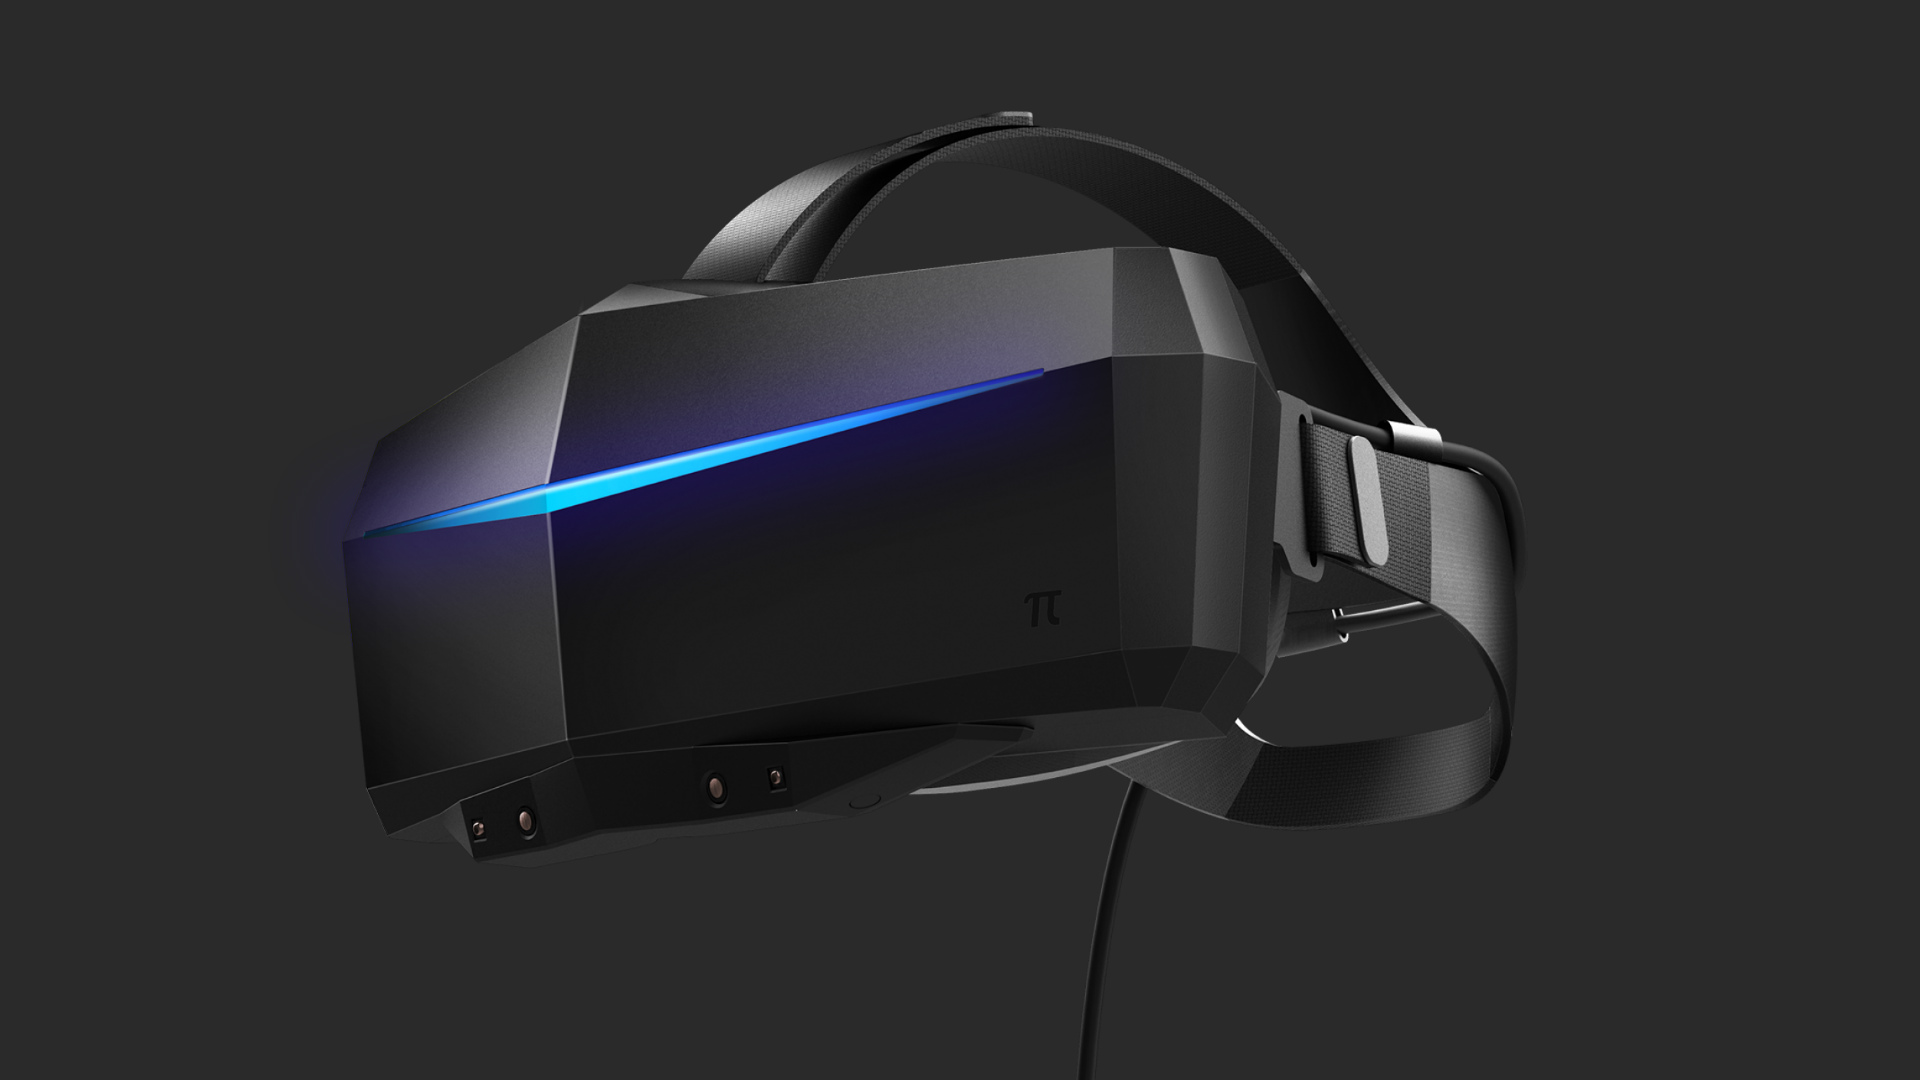 CES 2020: Pimax's Full VR Headset Lineup Compared